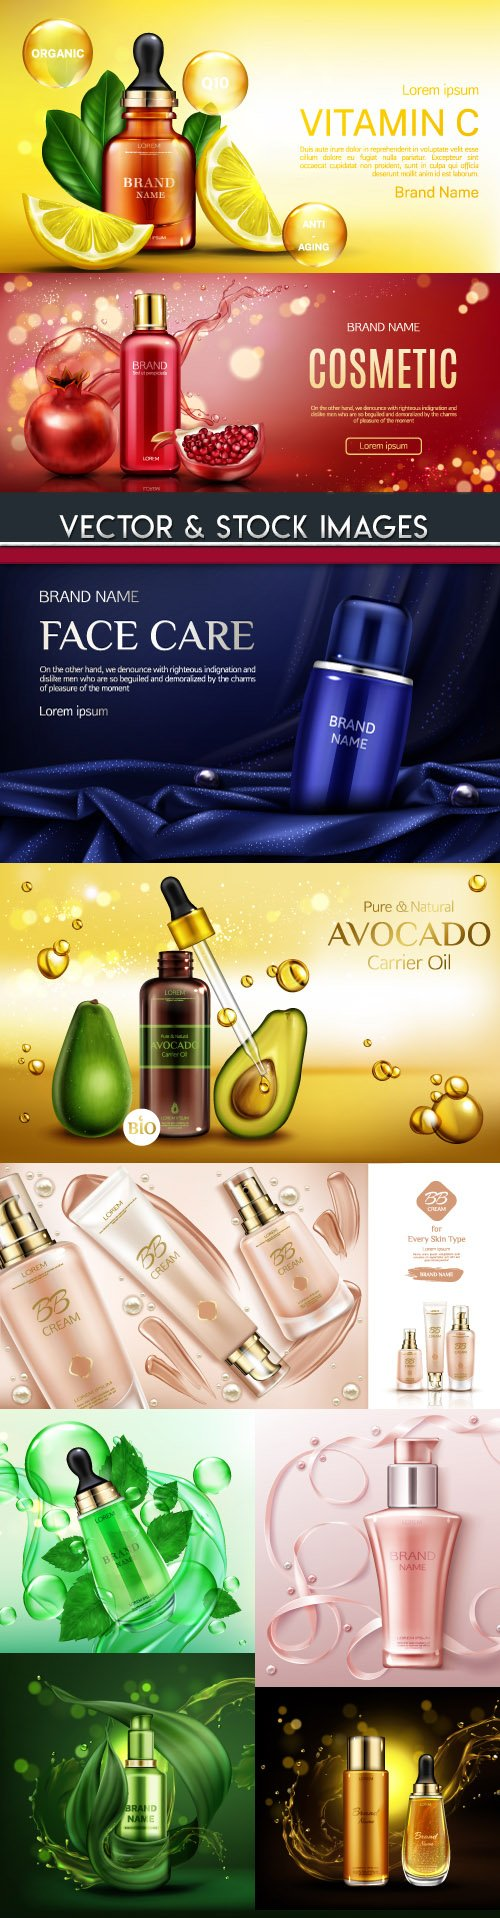 3d model cosmetics for face care design illustrations